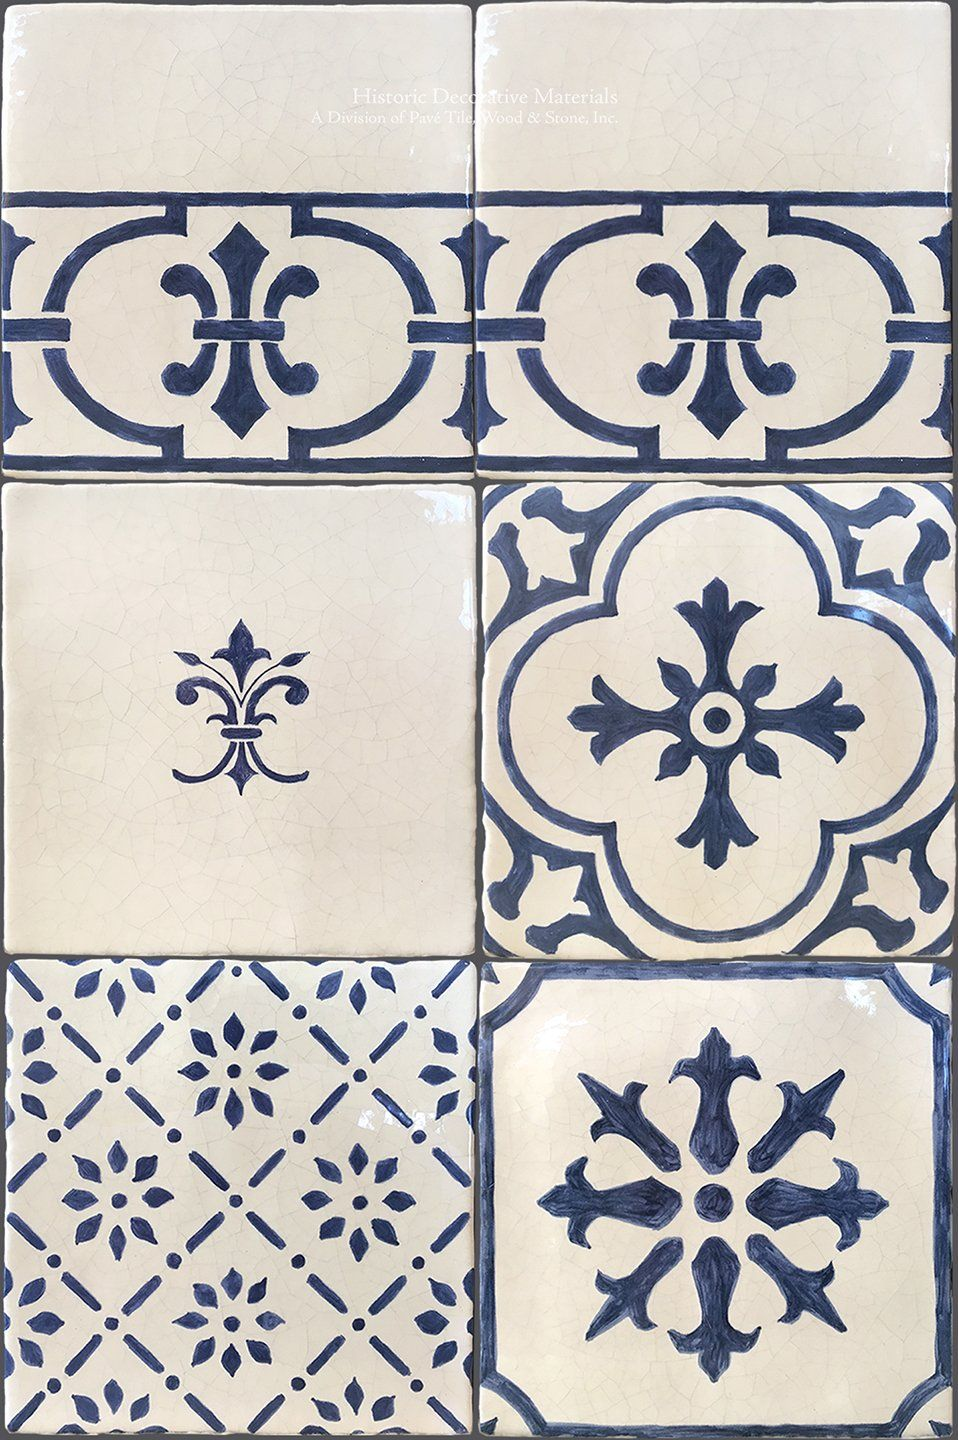 15 Gorgeous French Country Tiles For Walls And Floors